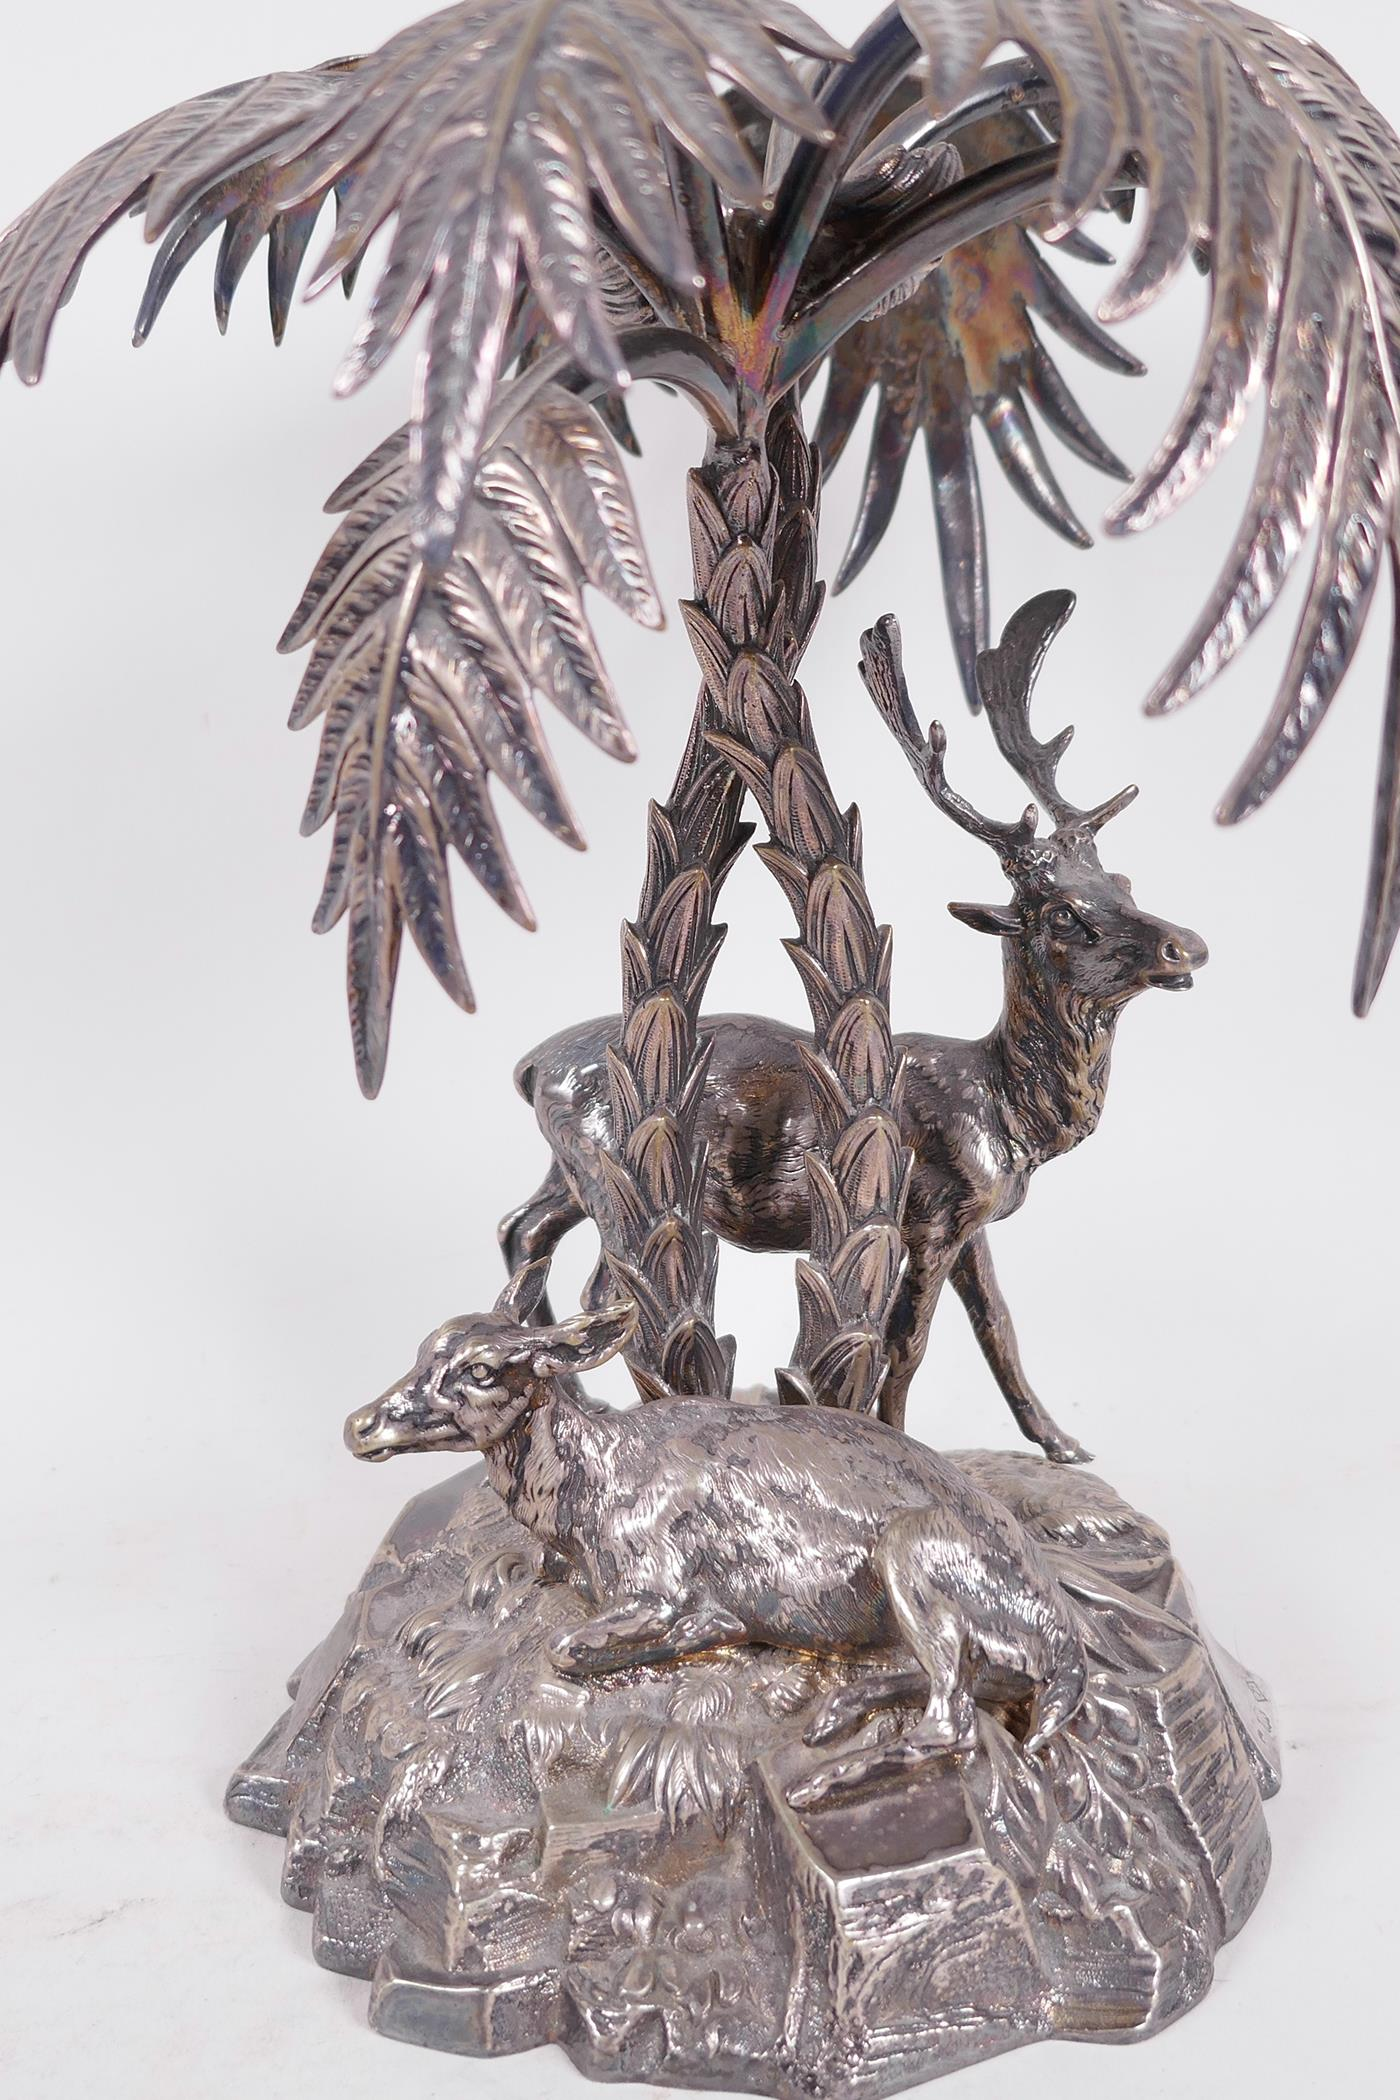 A C19th silver plated table centrepiece formed as deer under a palm tree by Thomas Bradbury and - Image 2 of 6